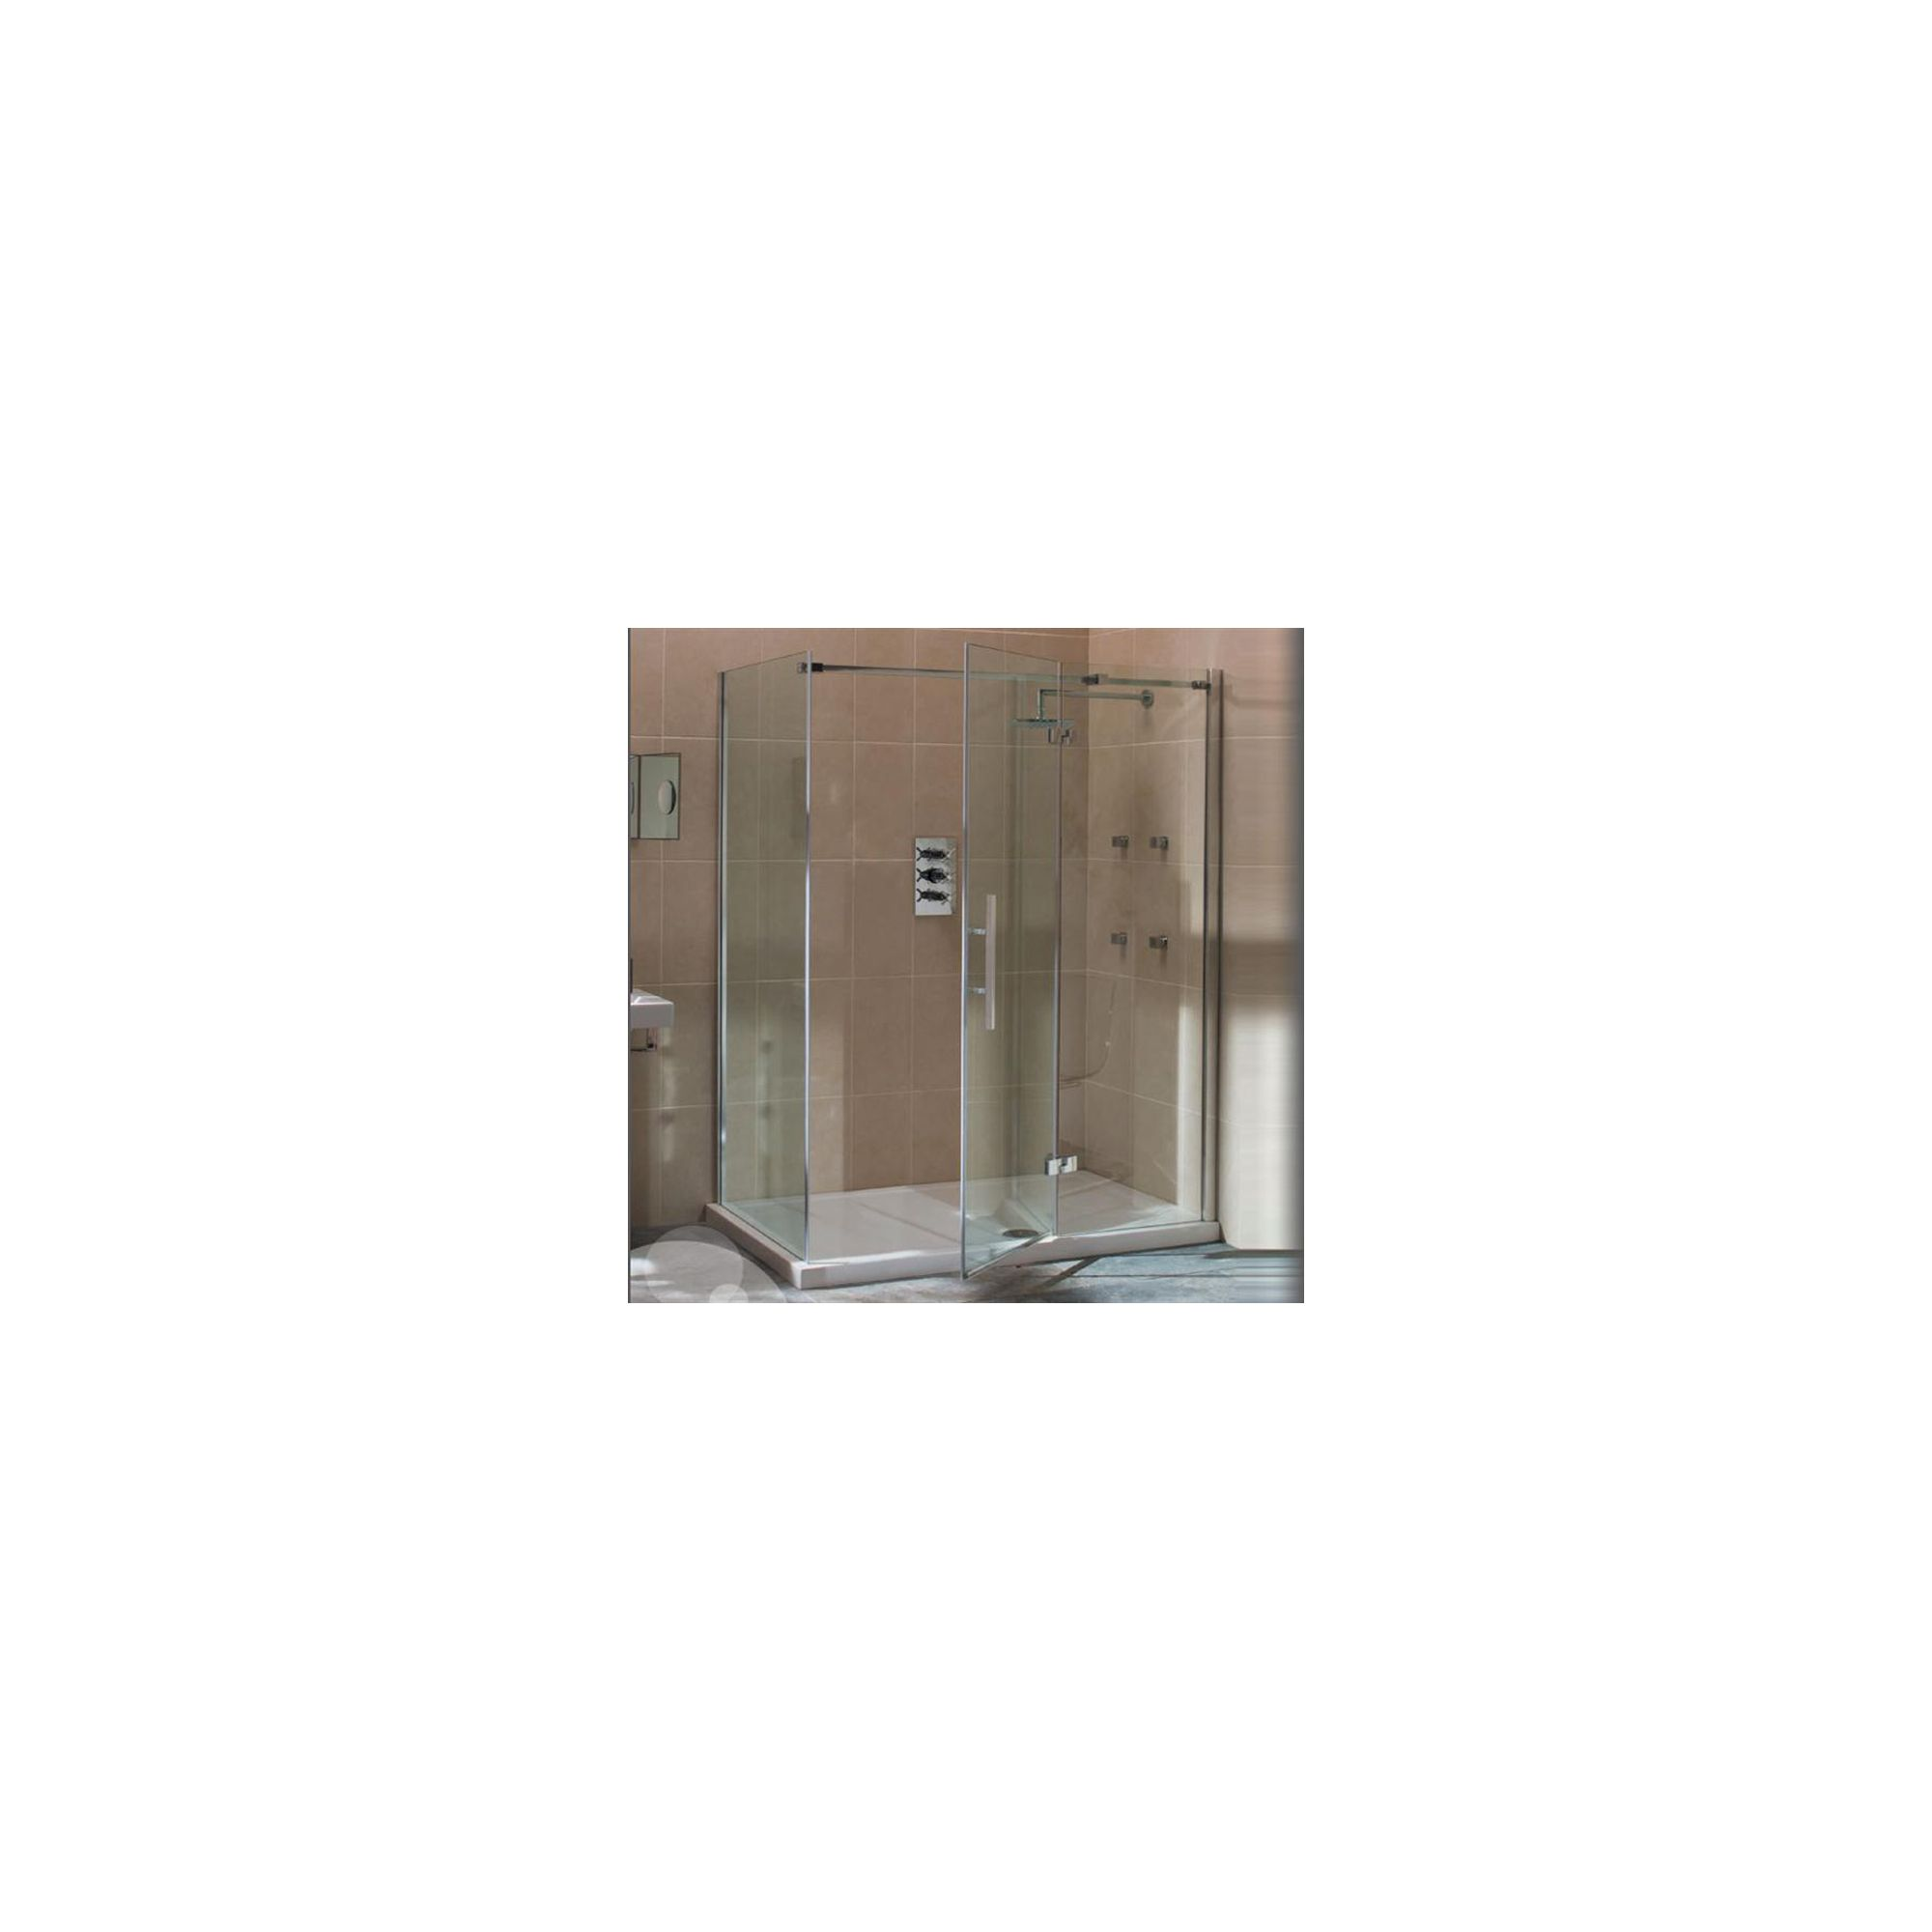 Merlyn Vivid Nine Frameless Hinged Shower Door and Inline Panel, 900mm Wide, Right Handed, 8mm Glass at Tesco Direct